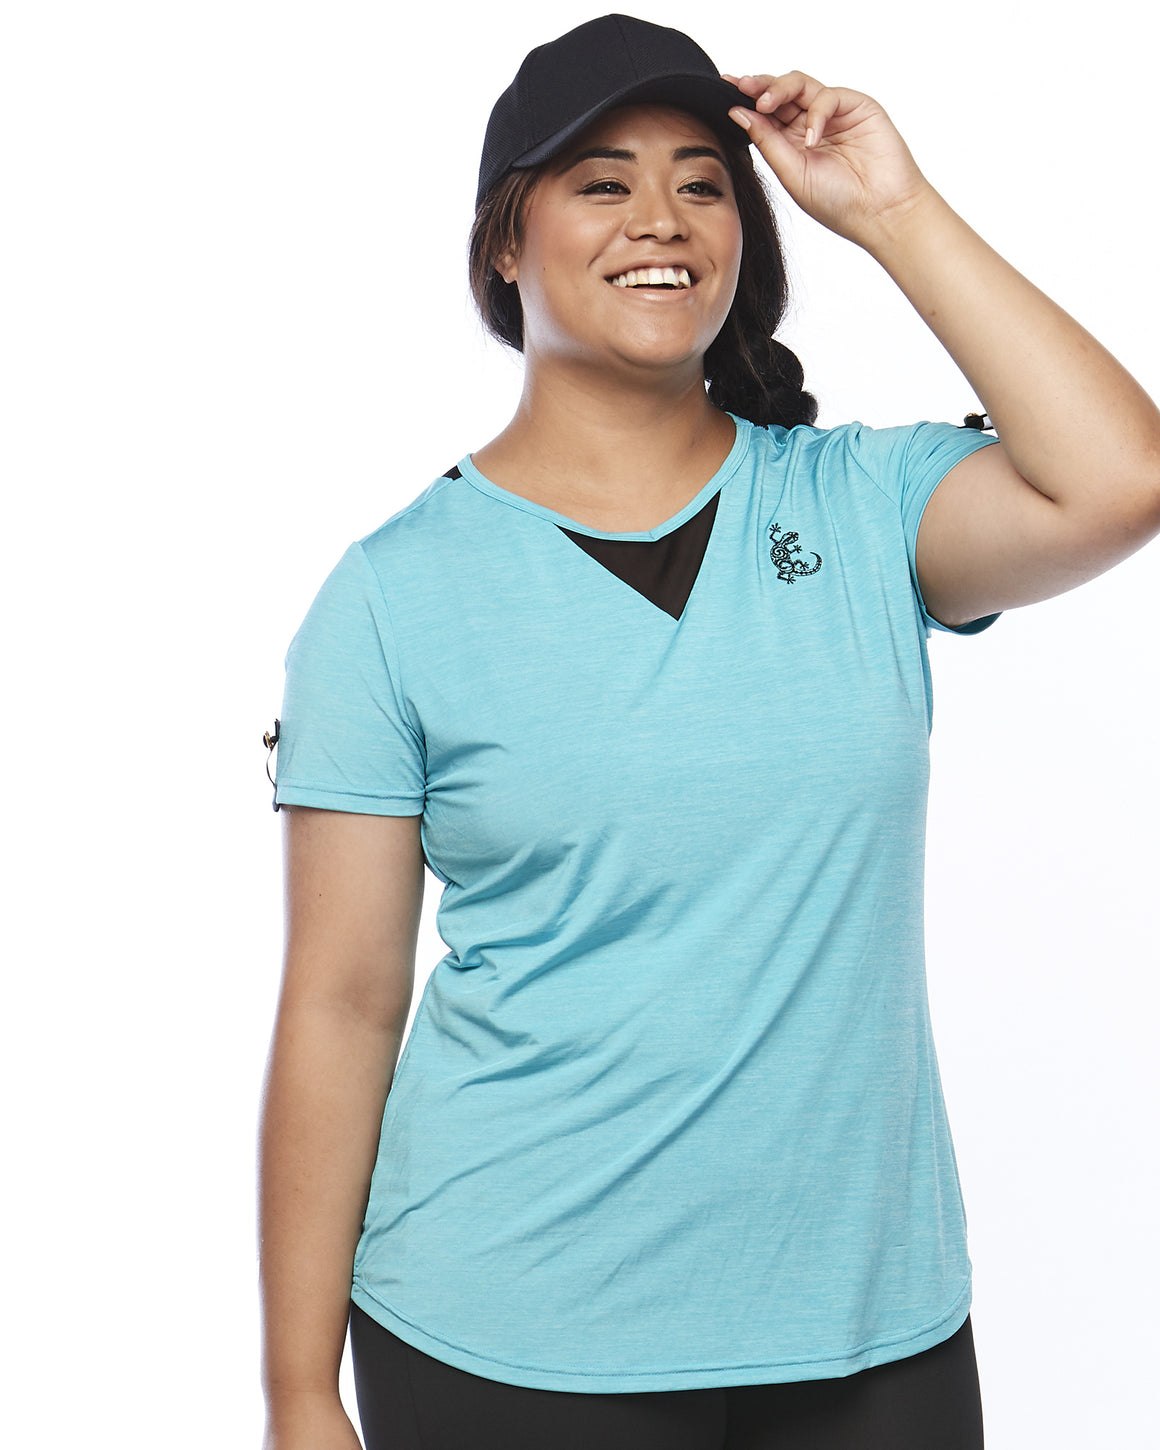 Zest Short Sleeve Shirt | Plus Size Sports Top | Lowanna Australia